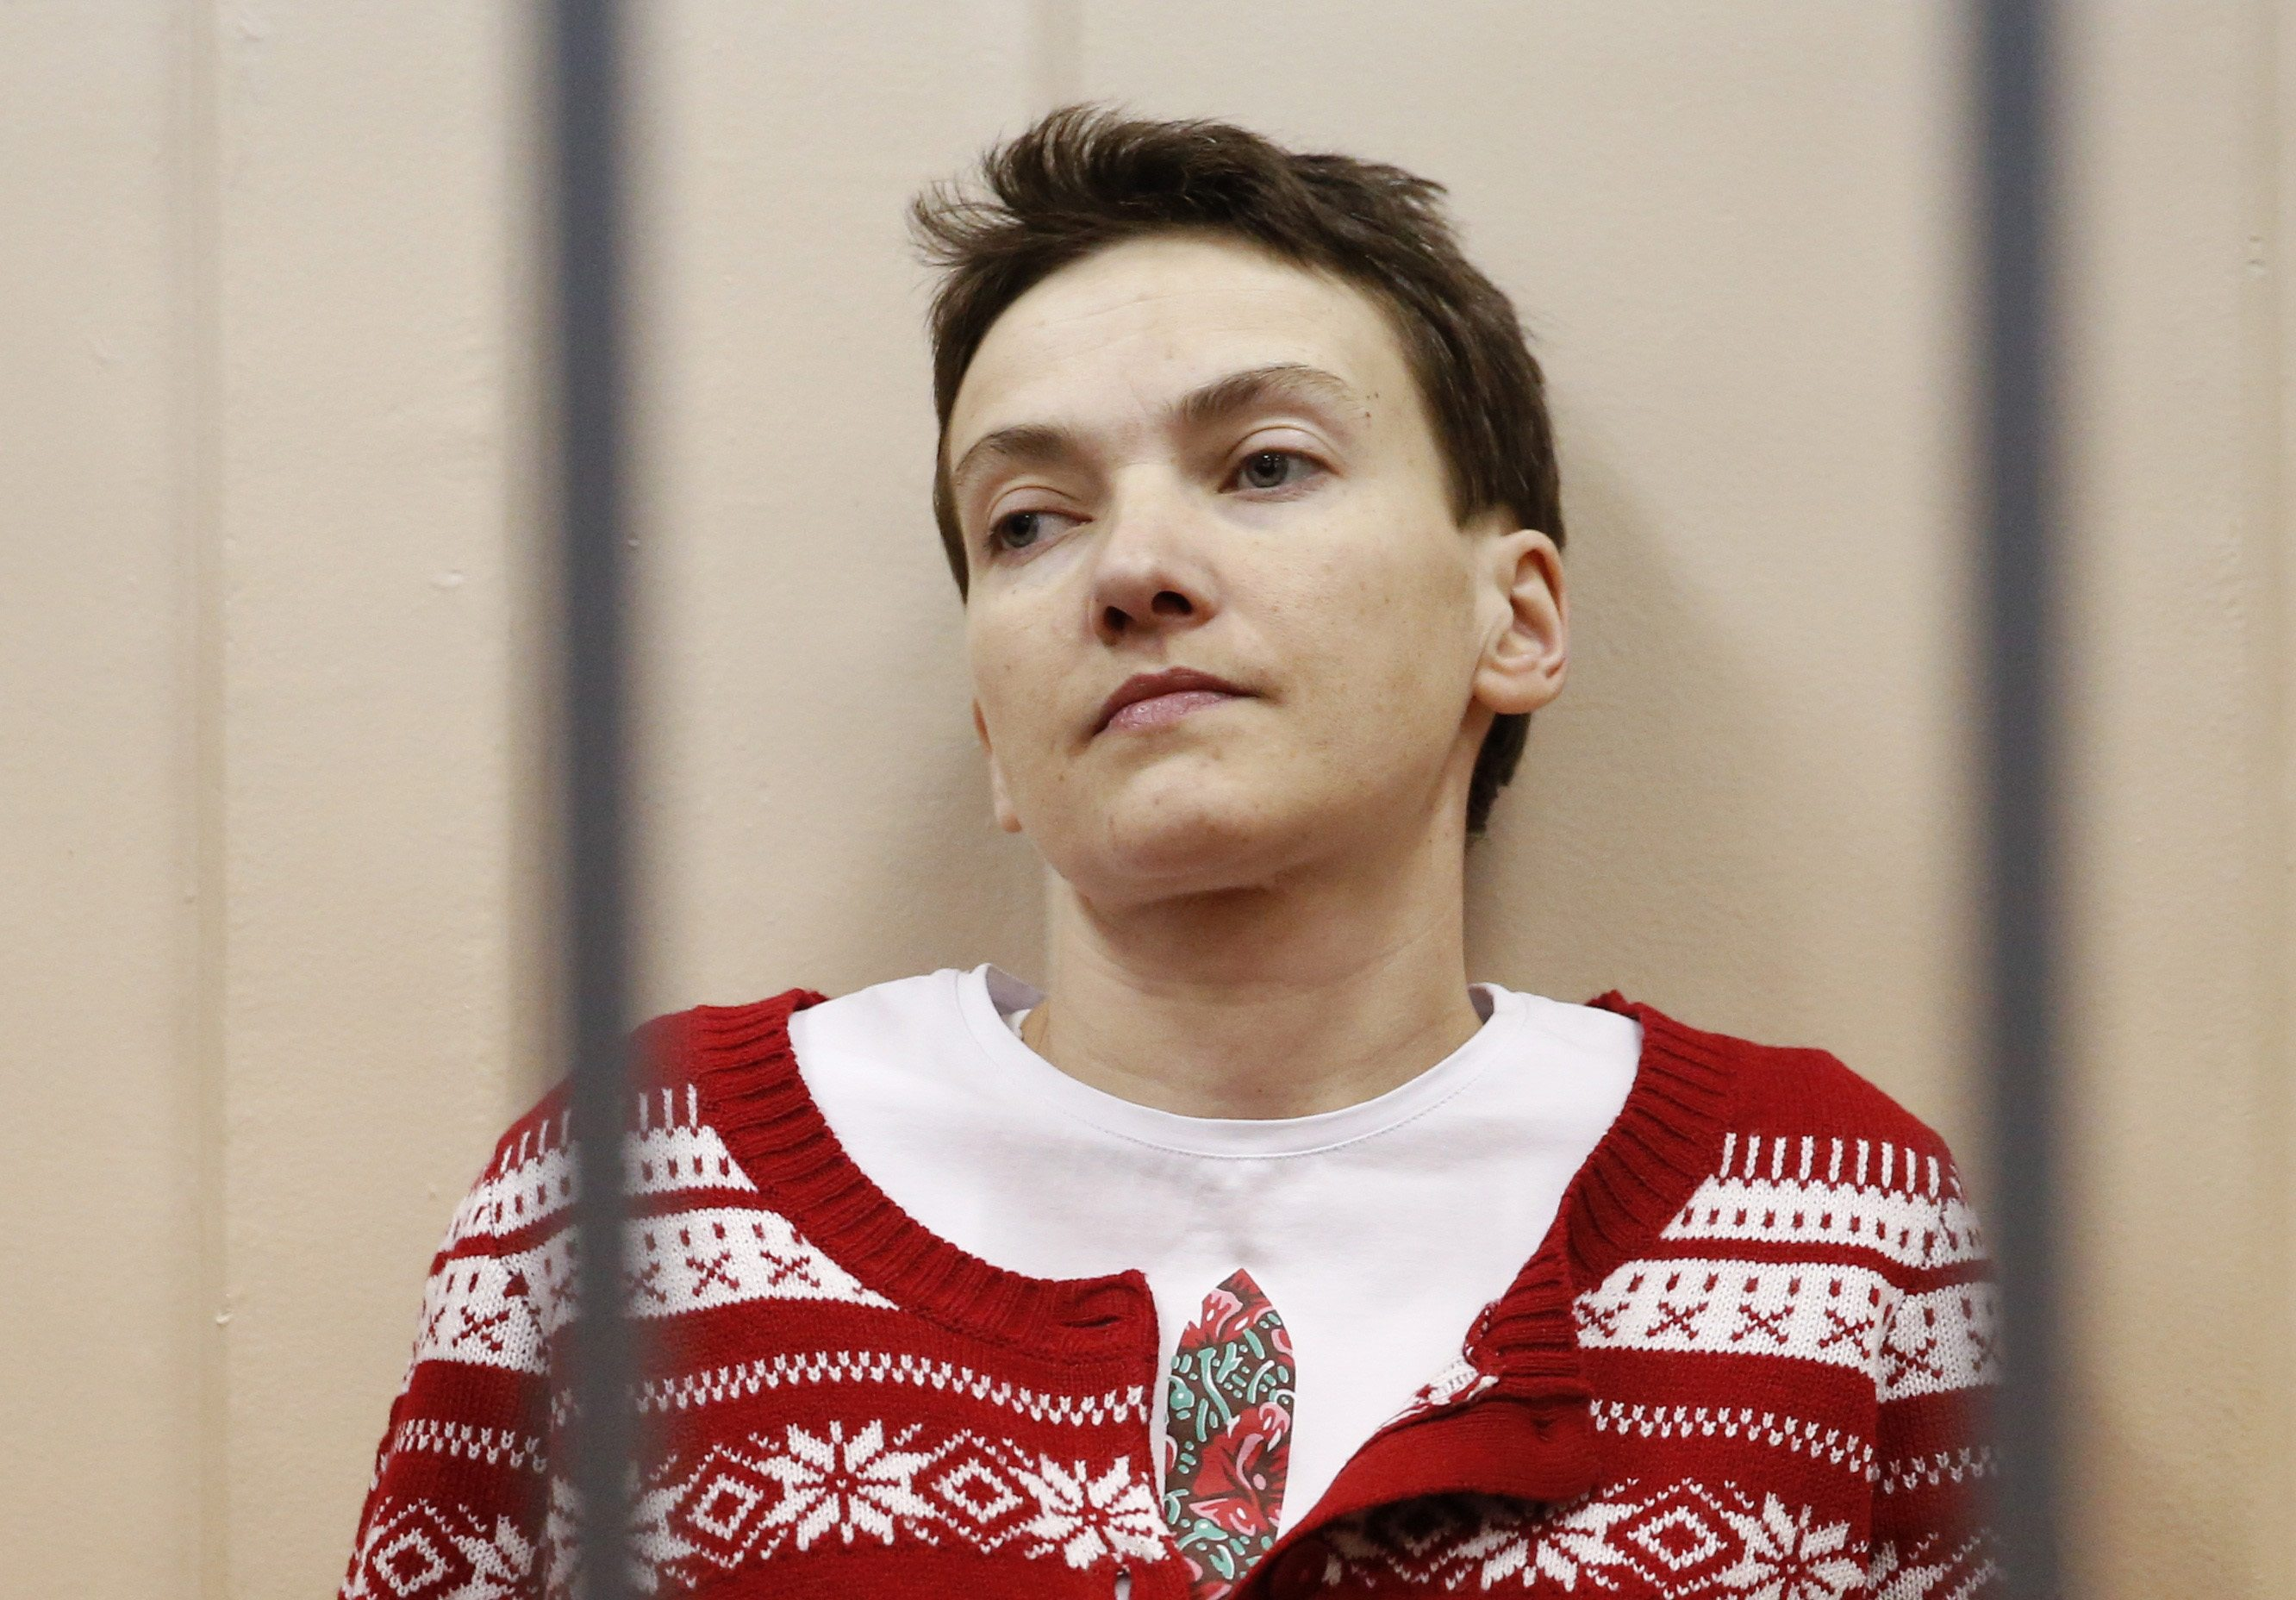 Ukrainian military pilot Nadezhda Savchenko looks out from a defendants' cage as she attends a court hearing in Moscow March 4, 2015. Savchenko, 33, was captured by pro-Russian forces and handed over eight months ago to Russia, where she was imprisoned on charges of aiding the killing of two Russian journalists in east Ukraine. At home, she has become a symbol of resistance to Russian aggression. REUTERS/Maxim Zmeyev (RUSSIA - Tags: POLITICS CIVIL UNREST CRIME LAW CONFLICT MILITARY)